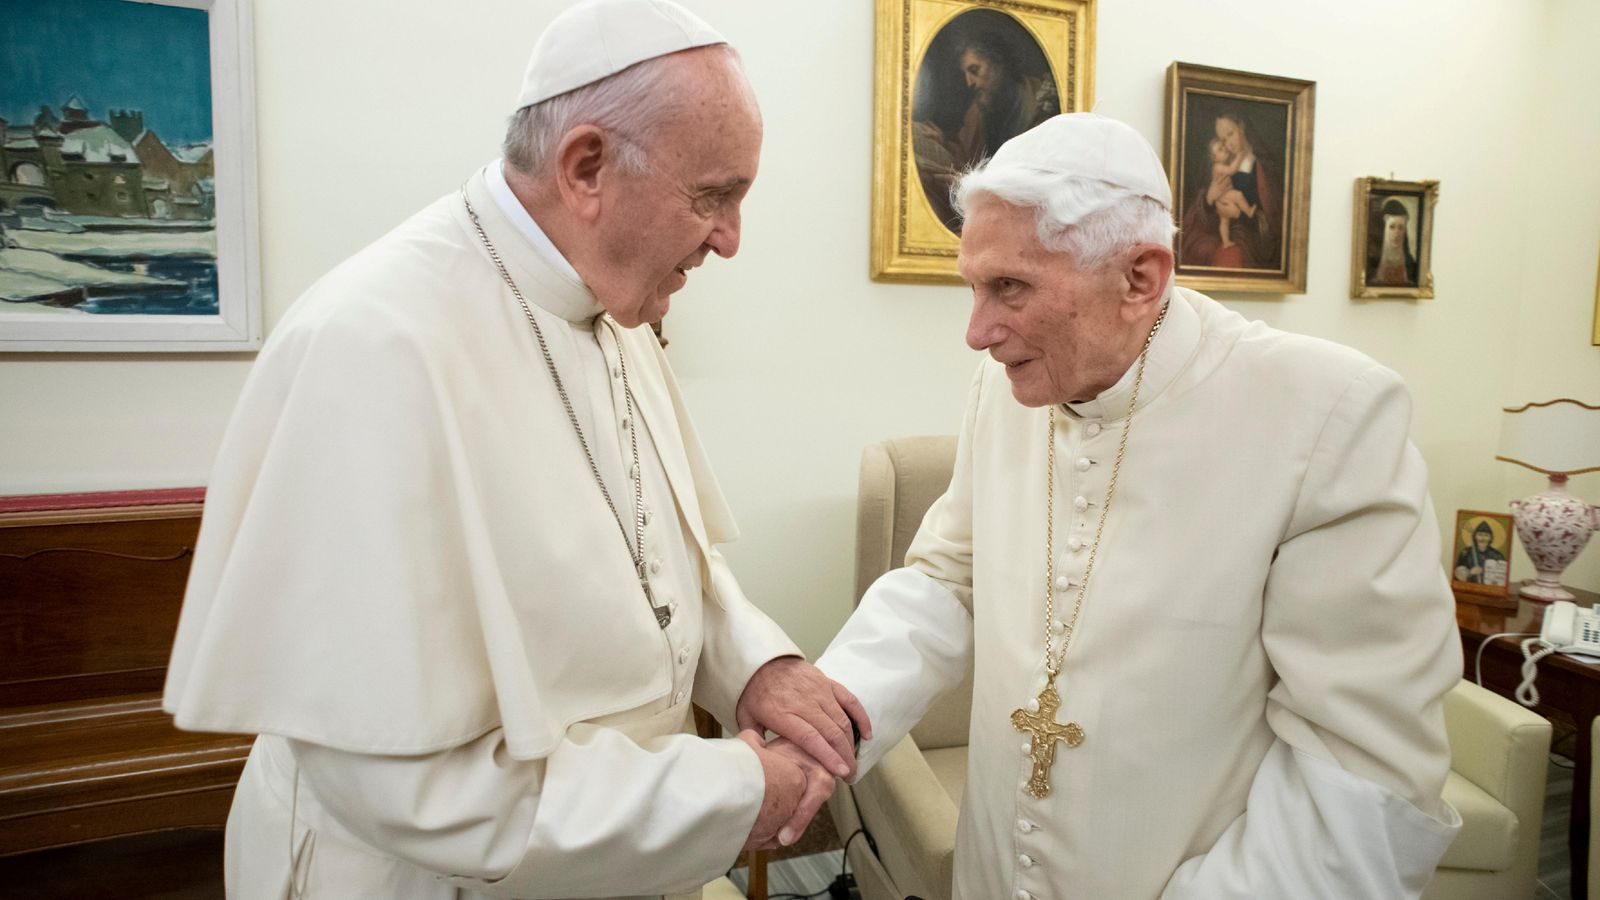 Benedict, right, was succeeded by Pope Francis, left